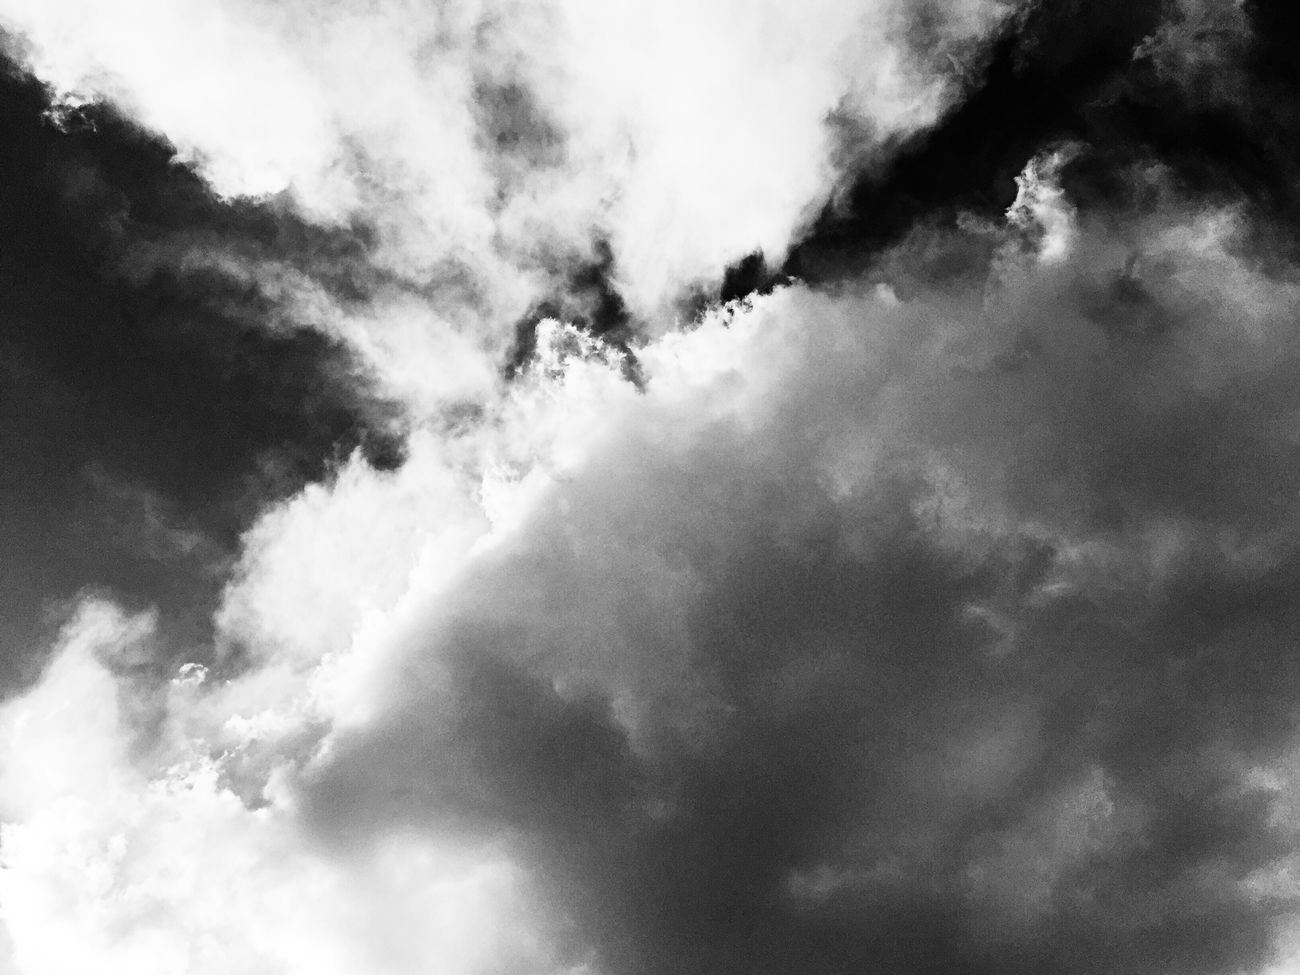 http://youtu.be/XgJFqVvb2Ws Texas Skies EyeEm Music Lover My Cloud Obsession☁️ Eye4photography  Mood And Music We Own The Light Tadaa Community EyeEm Bnw_collection Monochrome Fortheloveofblackandwhite Darkness And Light Interpretive